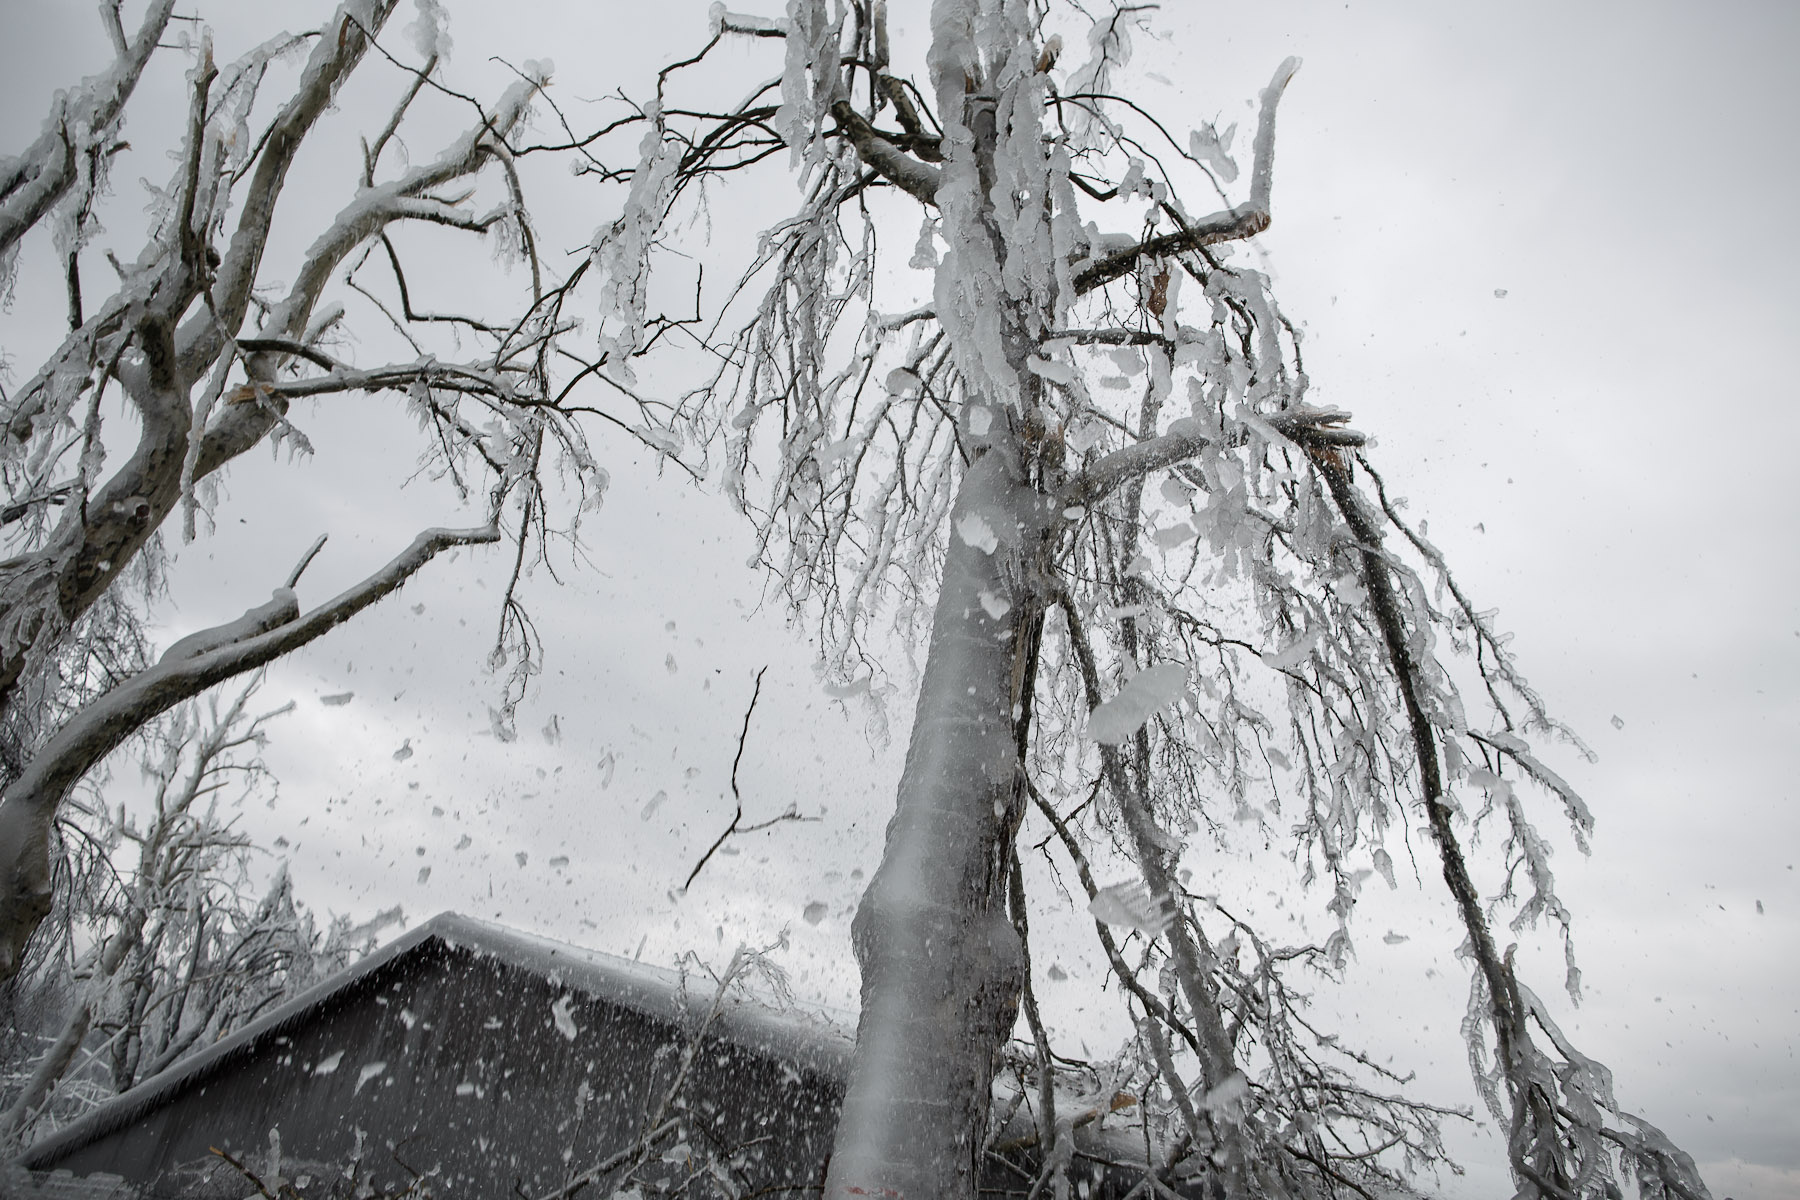 Ice and broken branches are seen crashing down from frozen trees in Postojna, Slovenia, February 5 2014.